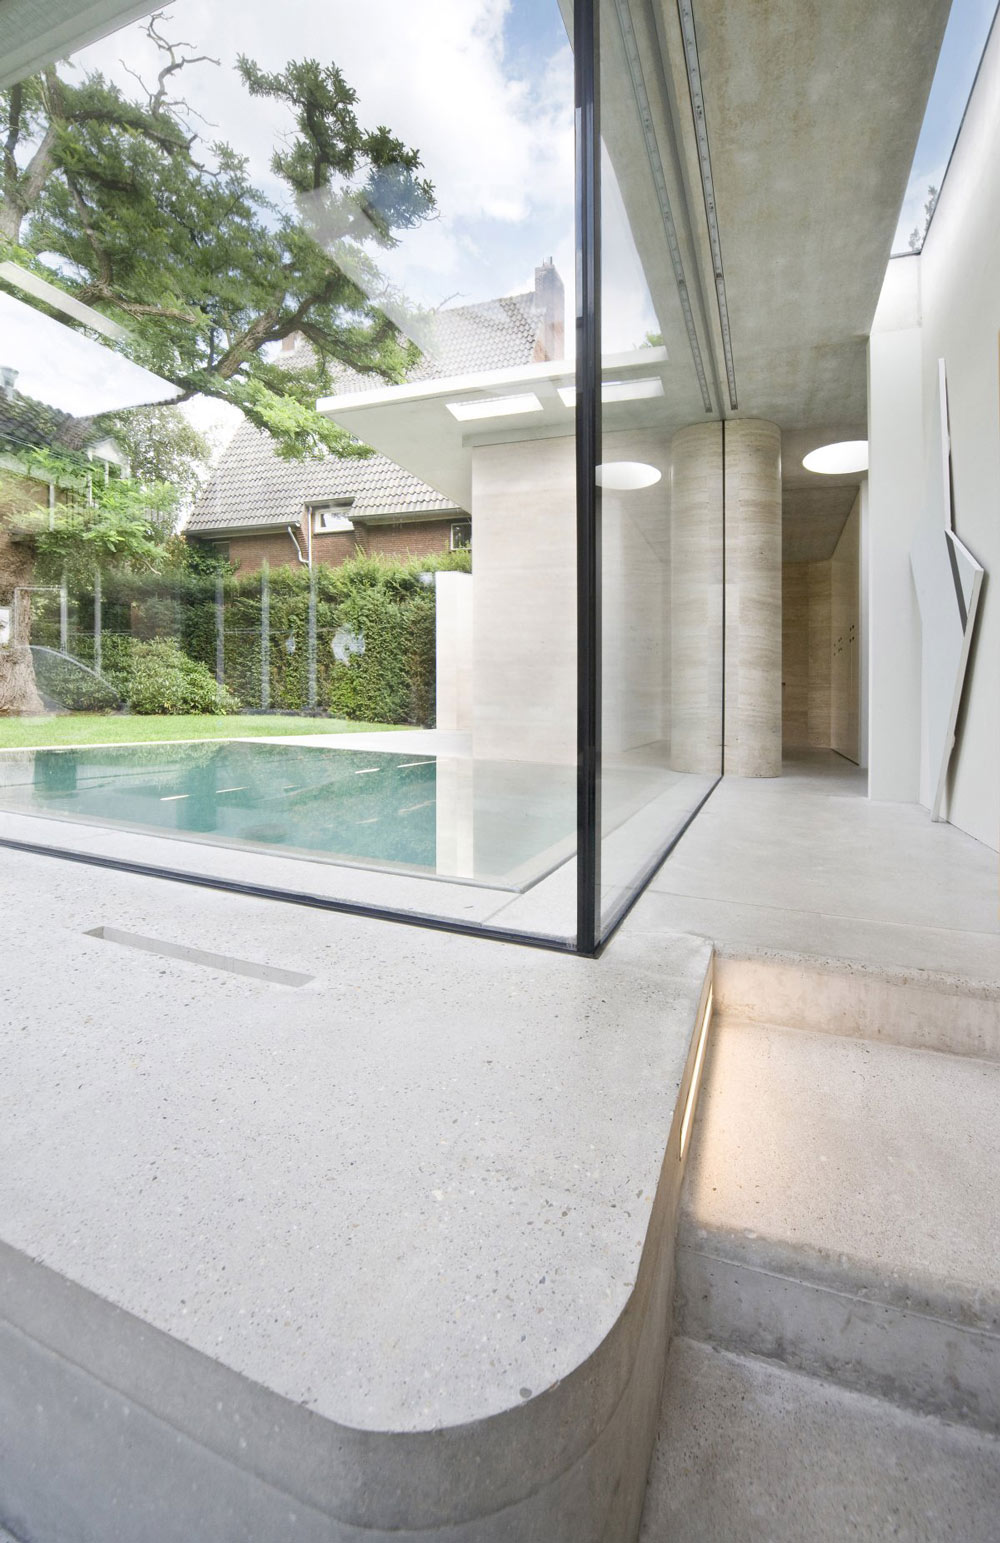 Glass Walls, Pool, Extension and Renovation in Eindhoven, The Netherlands